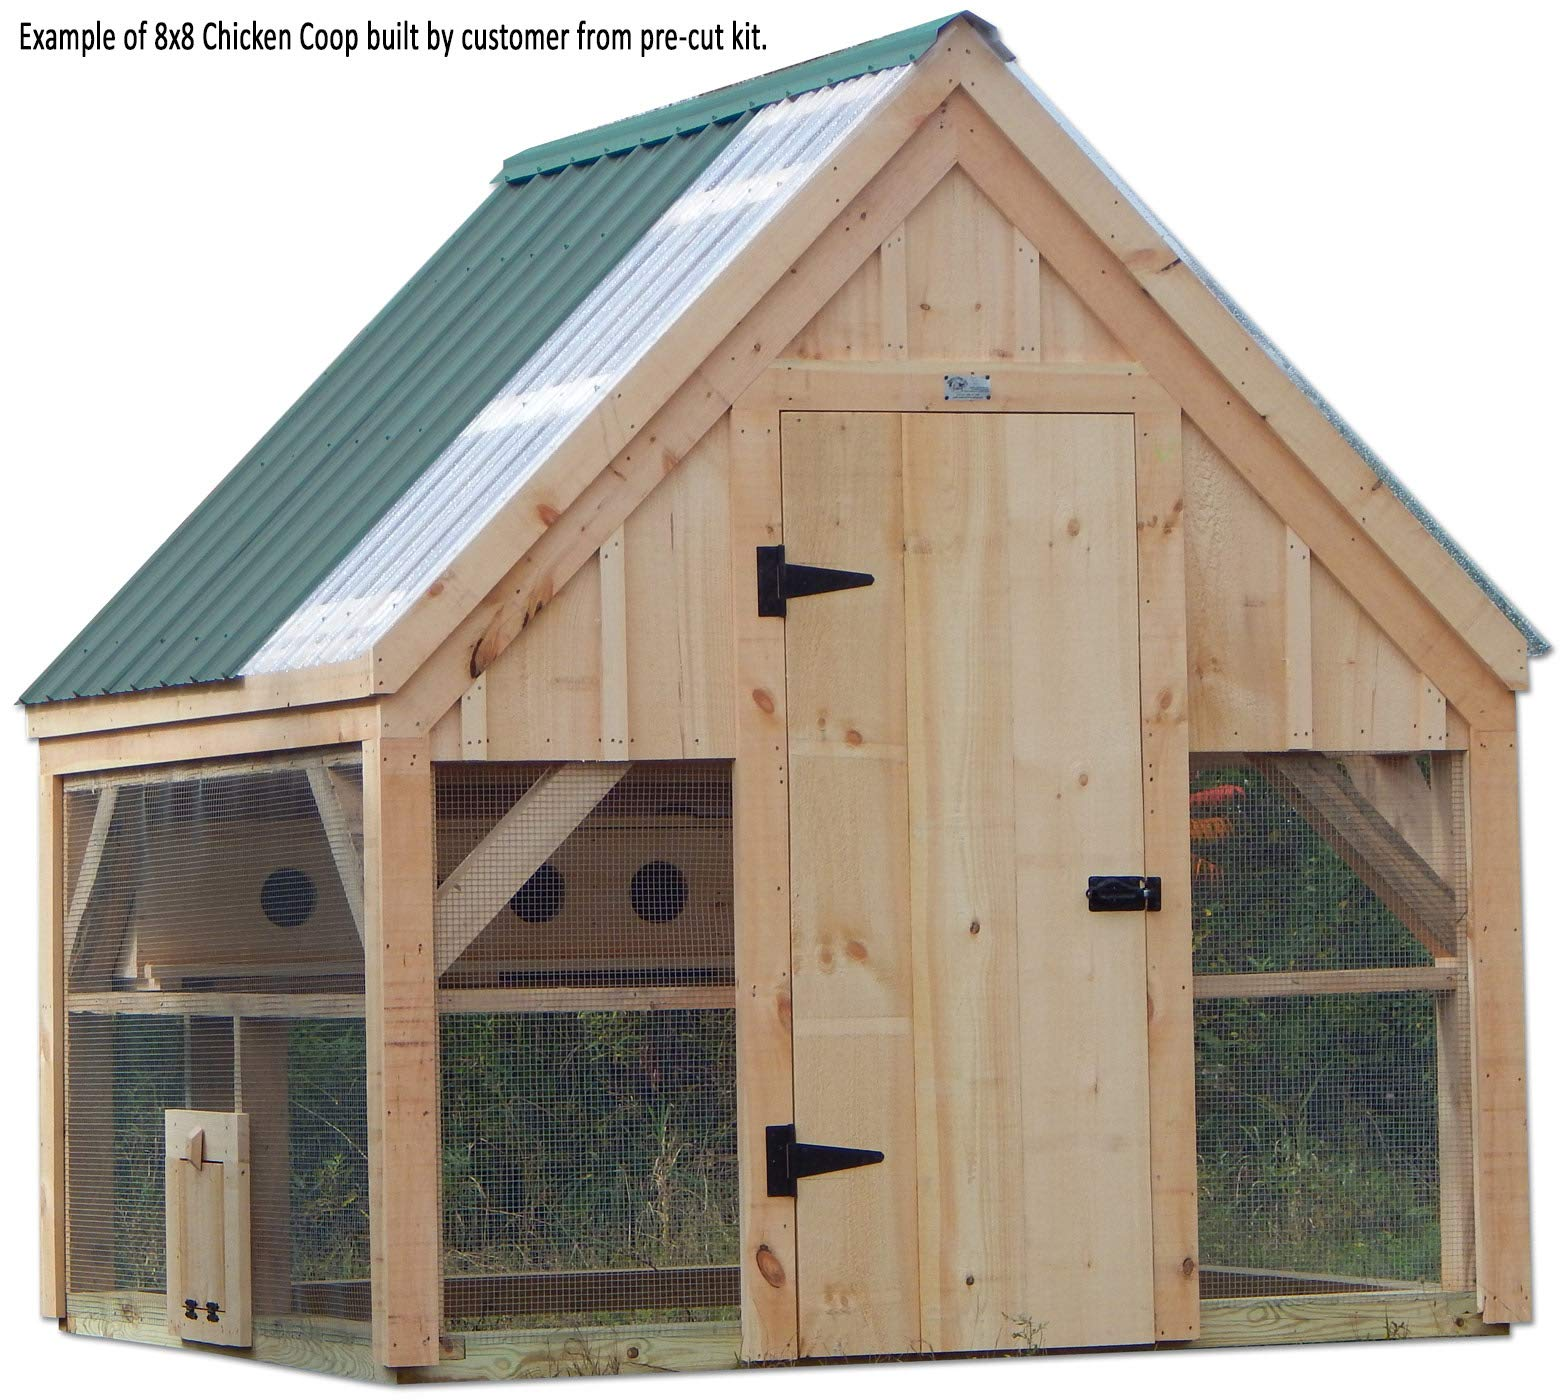 Timber Frame Post and Beam Plans - 8x8 Chicken Coop with Nesting Boxes - Step-By-Step DIY Plans by Jamaica Cottage Shop, Inc.